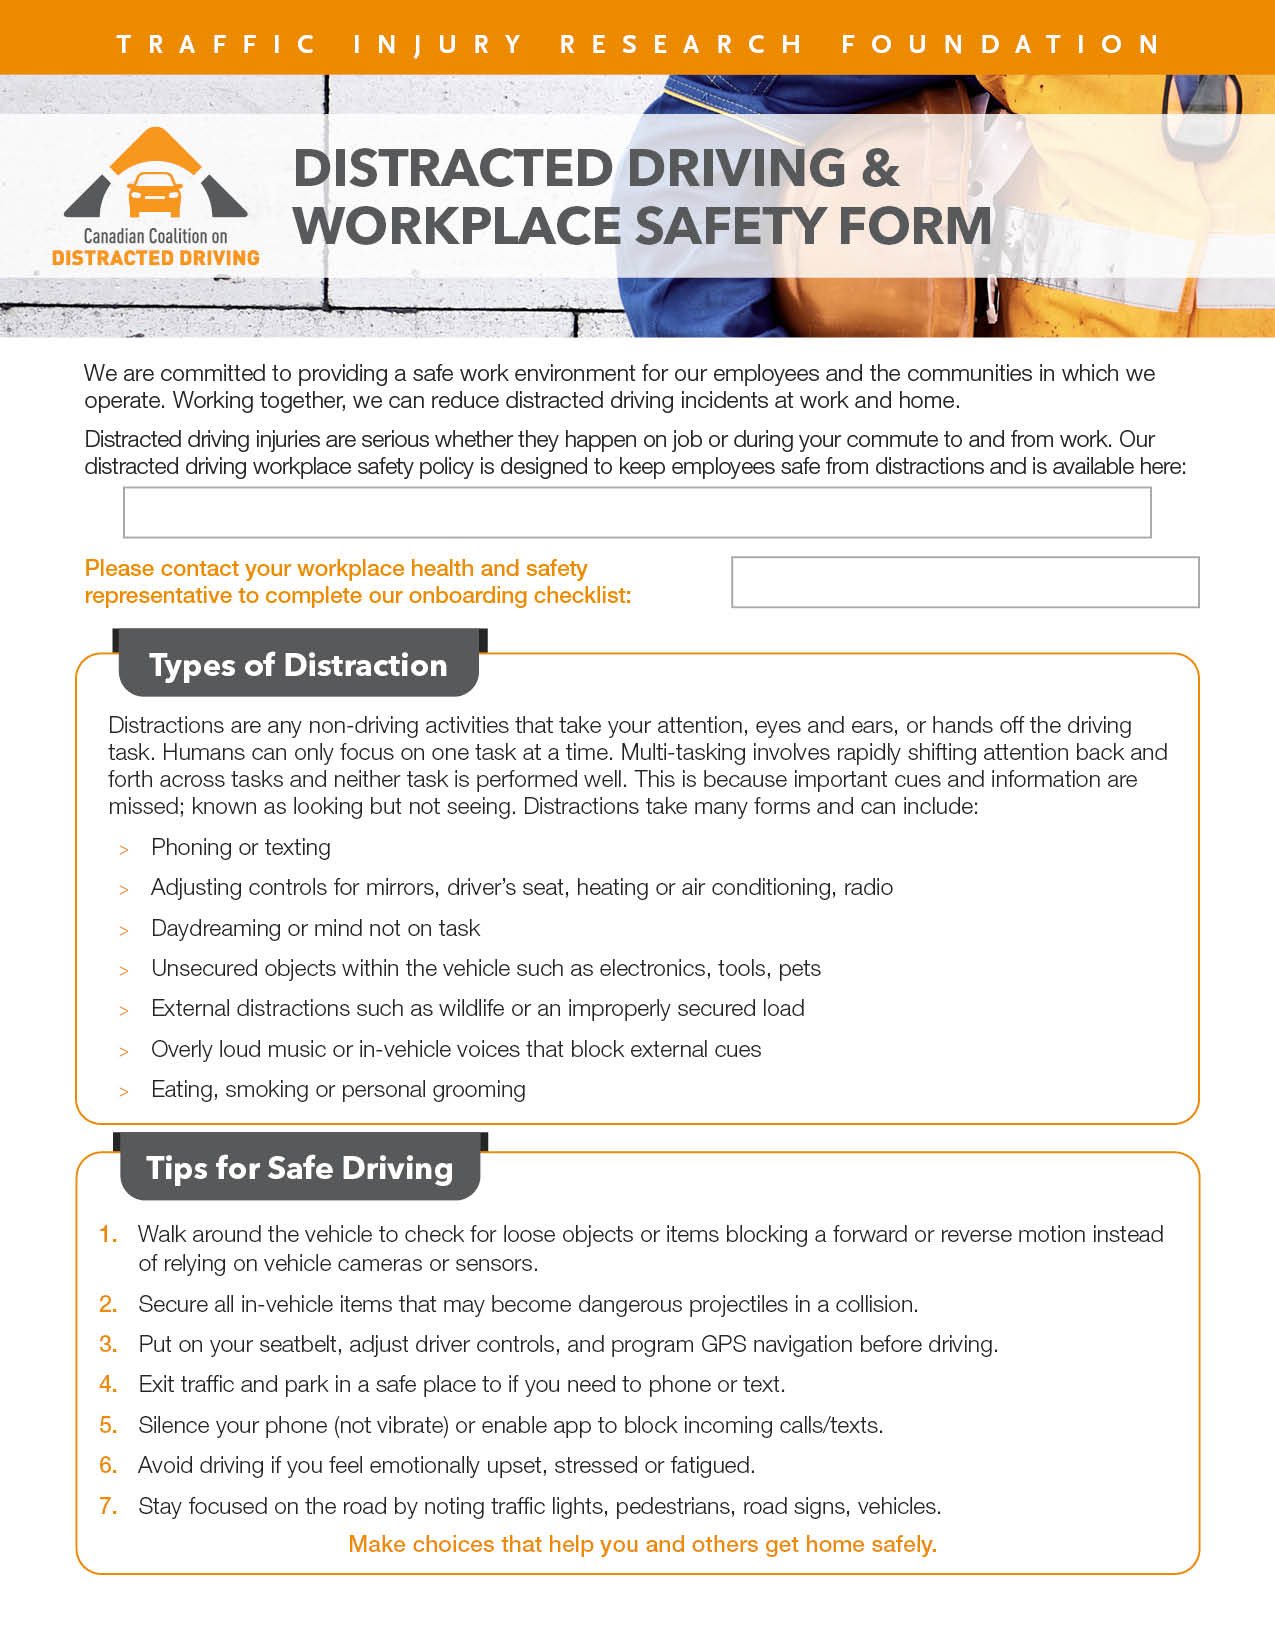 Distracted Driving & Workplace Safety Form